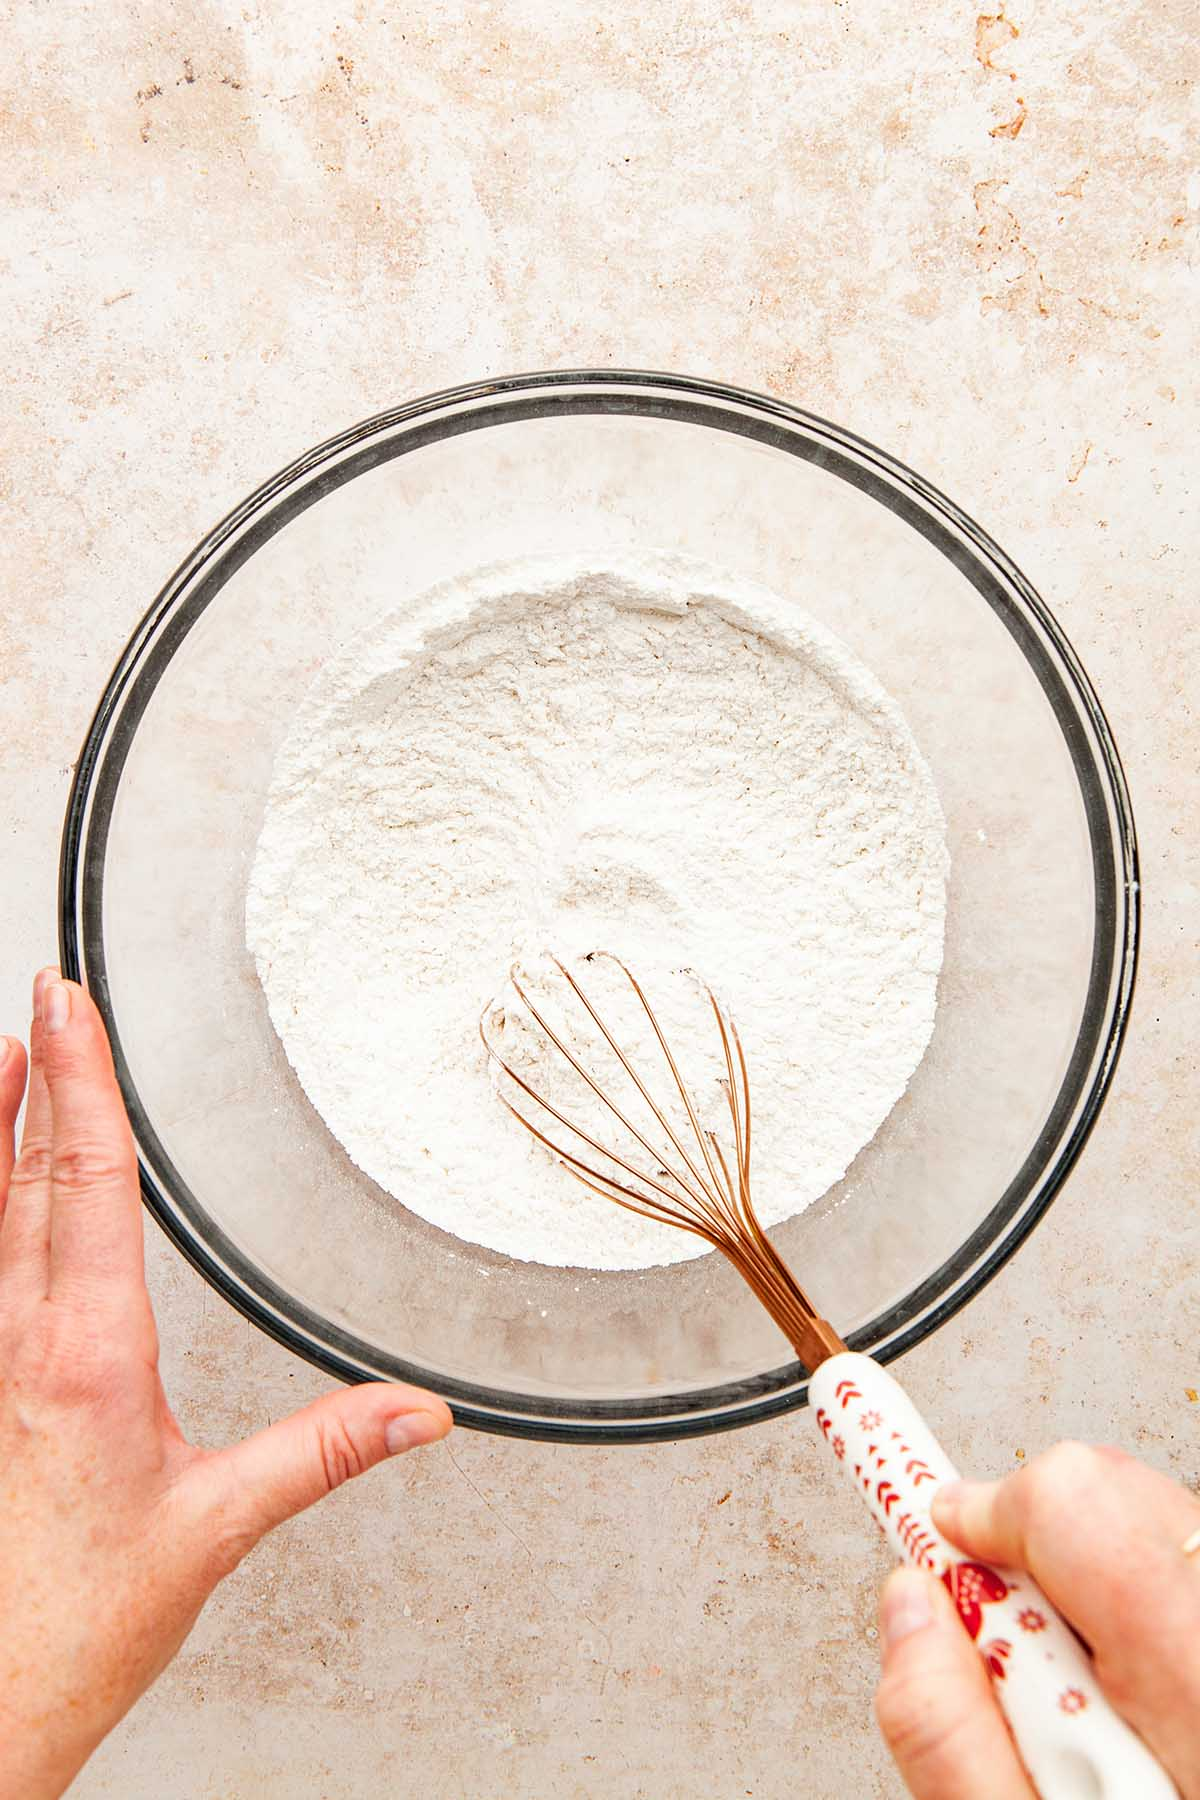 A hand using a whisk to mix flour, powdered sugar, and salt in a large glass bowl.